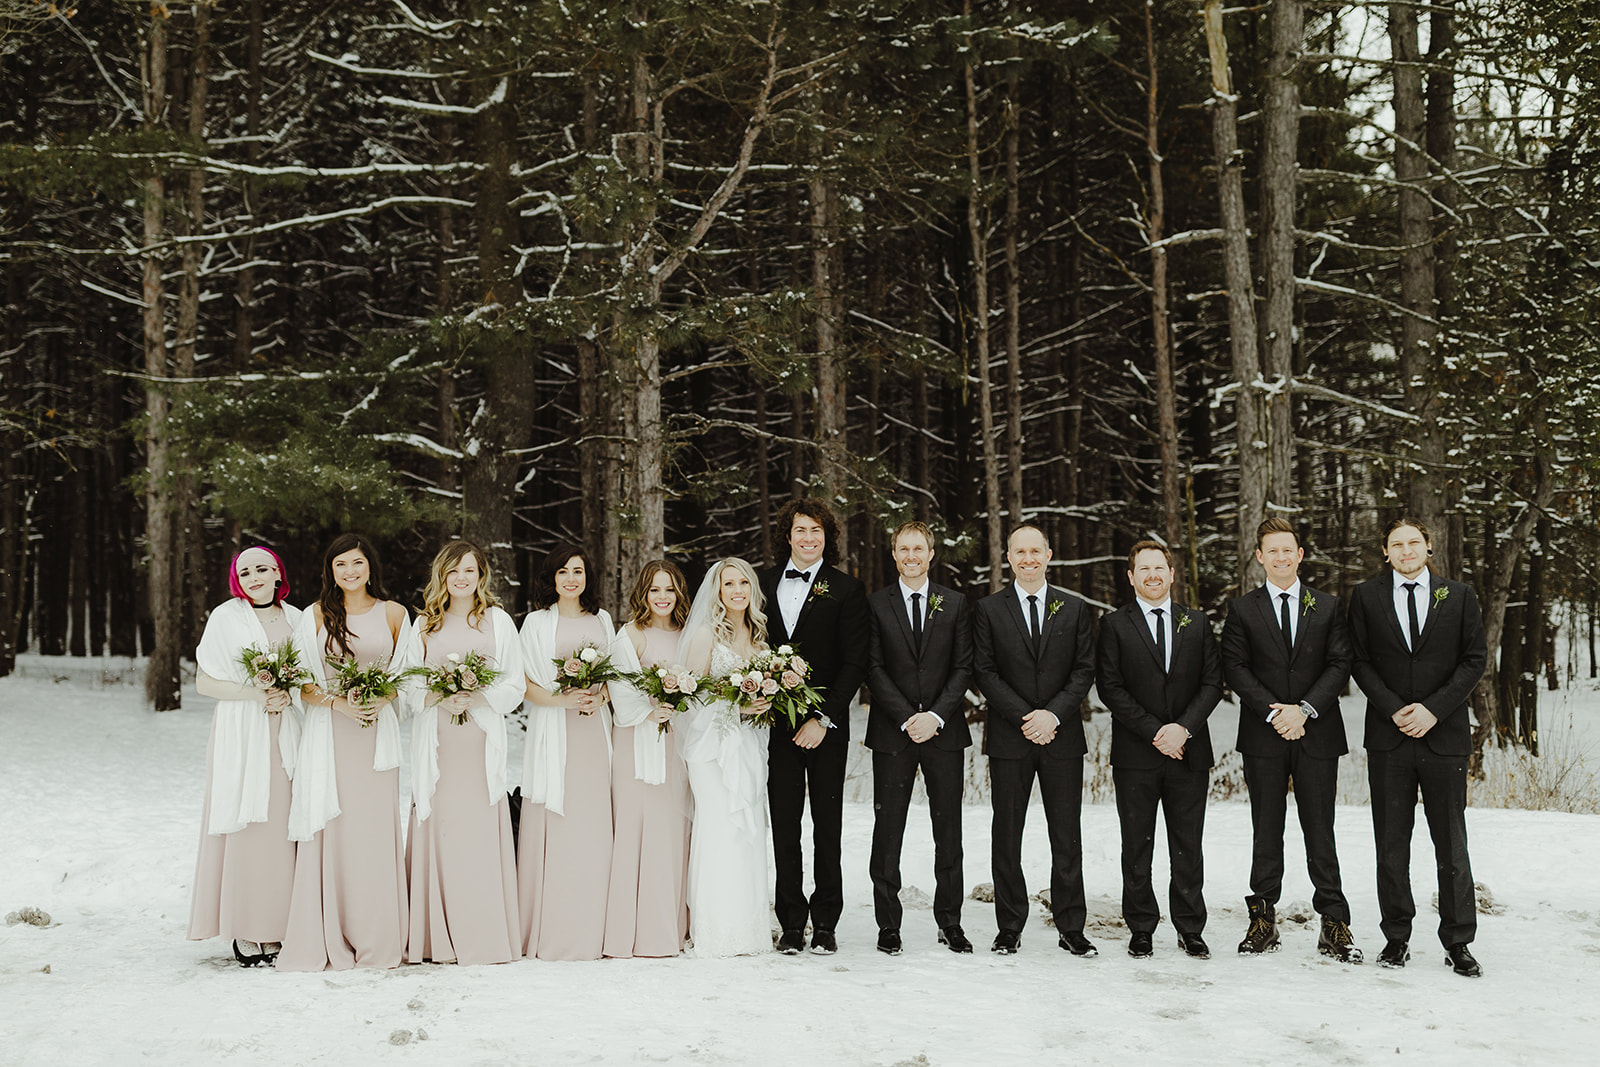 A wedding party smiling outside on a snowy Grand Rapids, Michigan day